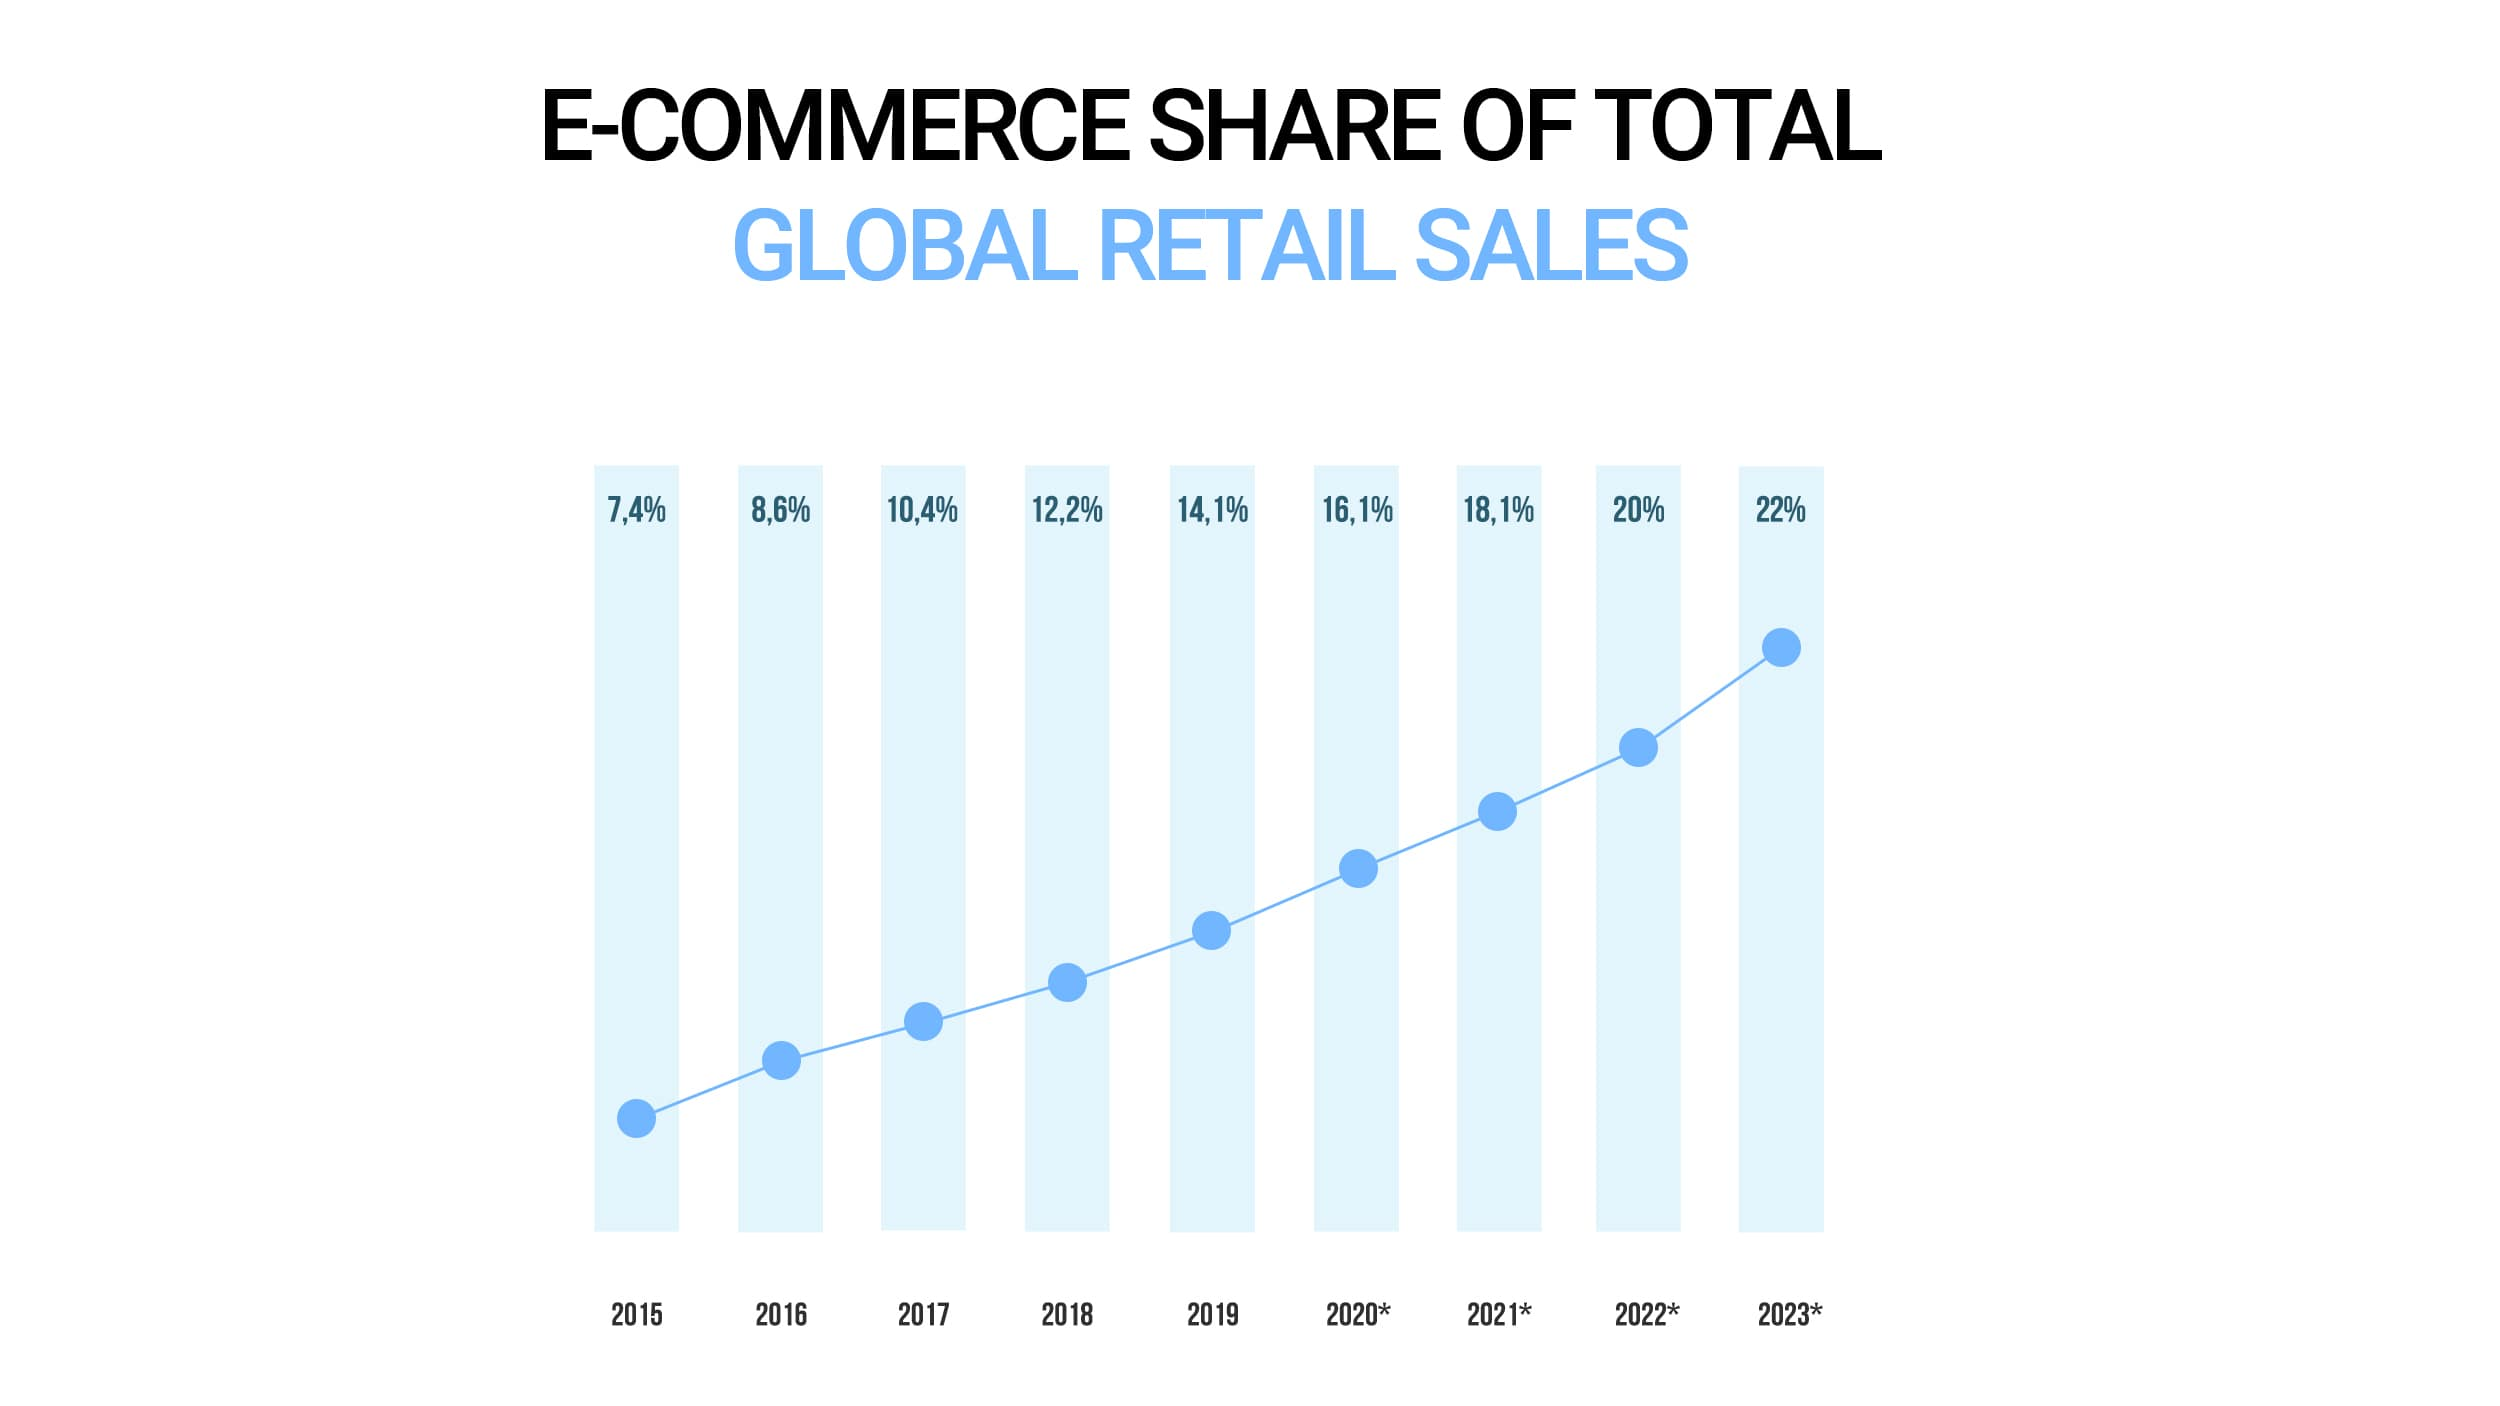 E-commerce share of total global retail sales from 2015 to 2023